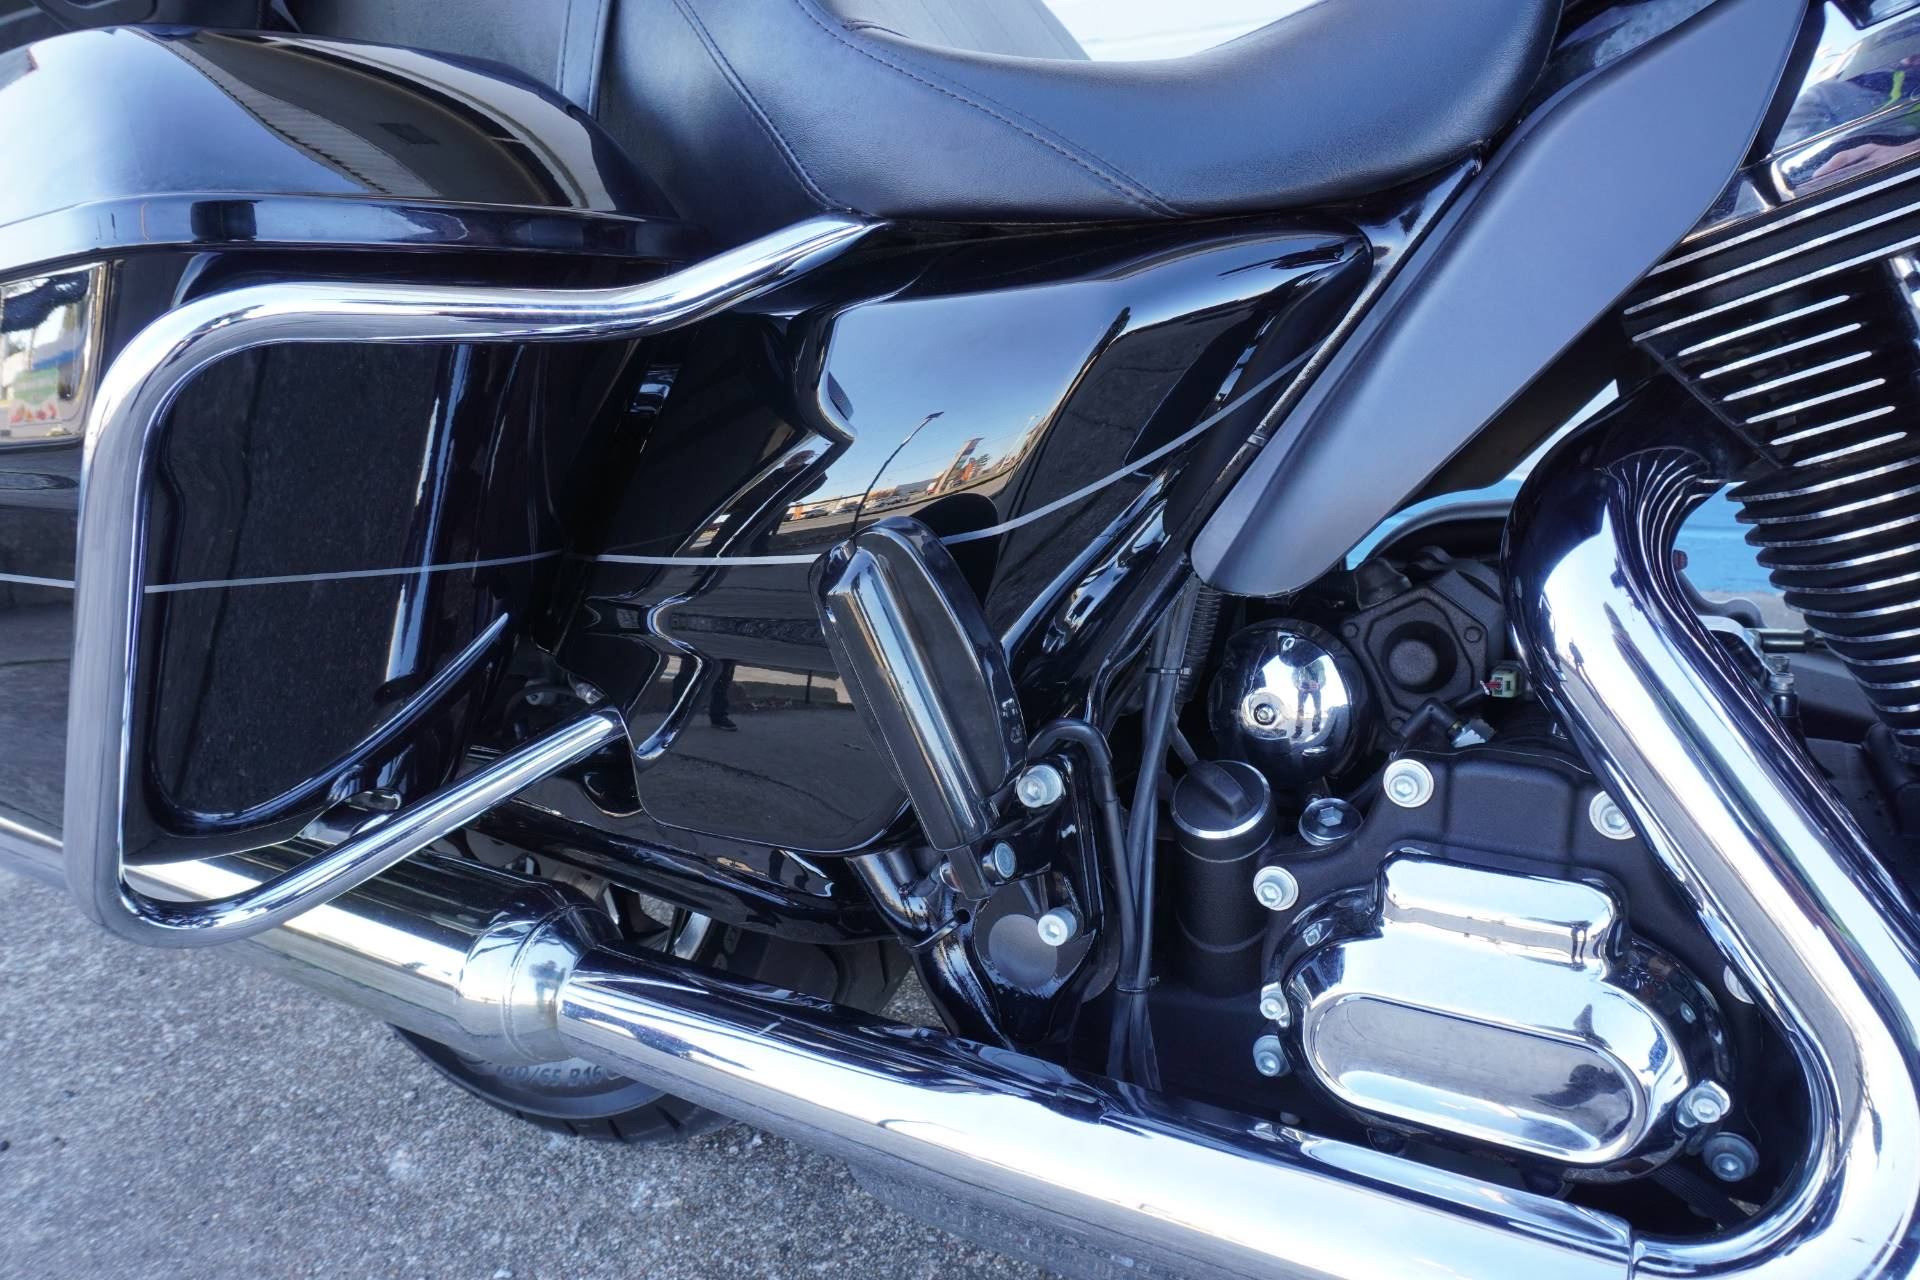 2016 Harley-Davidson Ultra Limited Low in Tulsa, Oklahoma - Photo 22